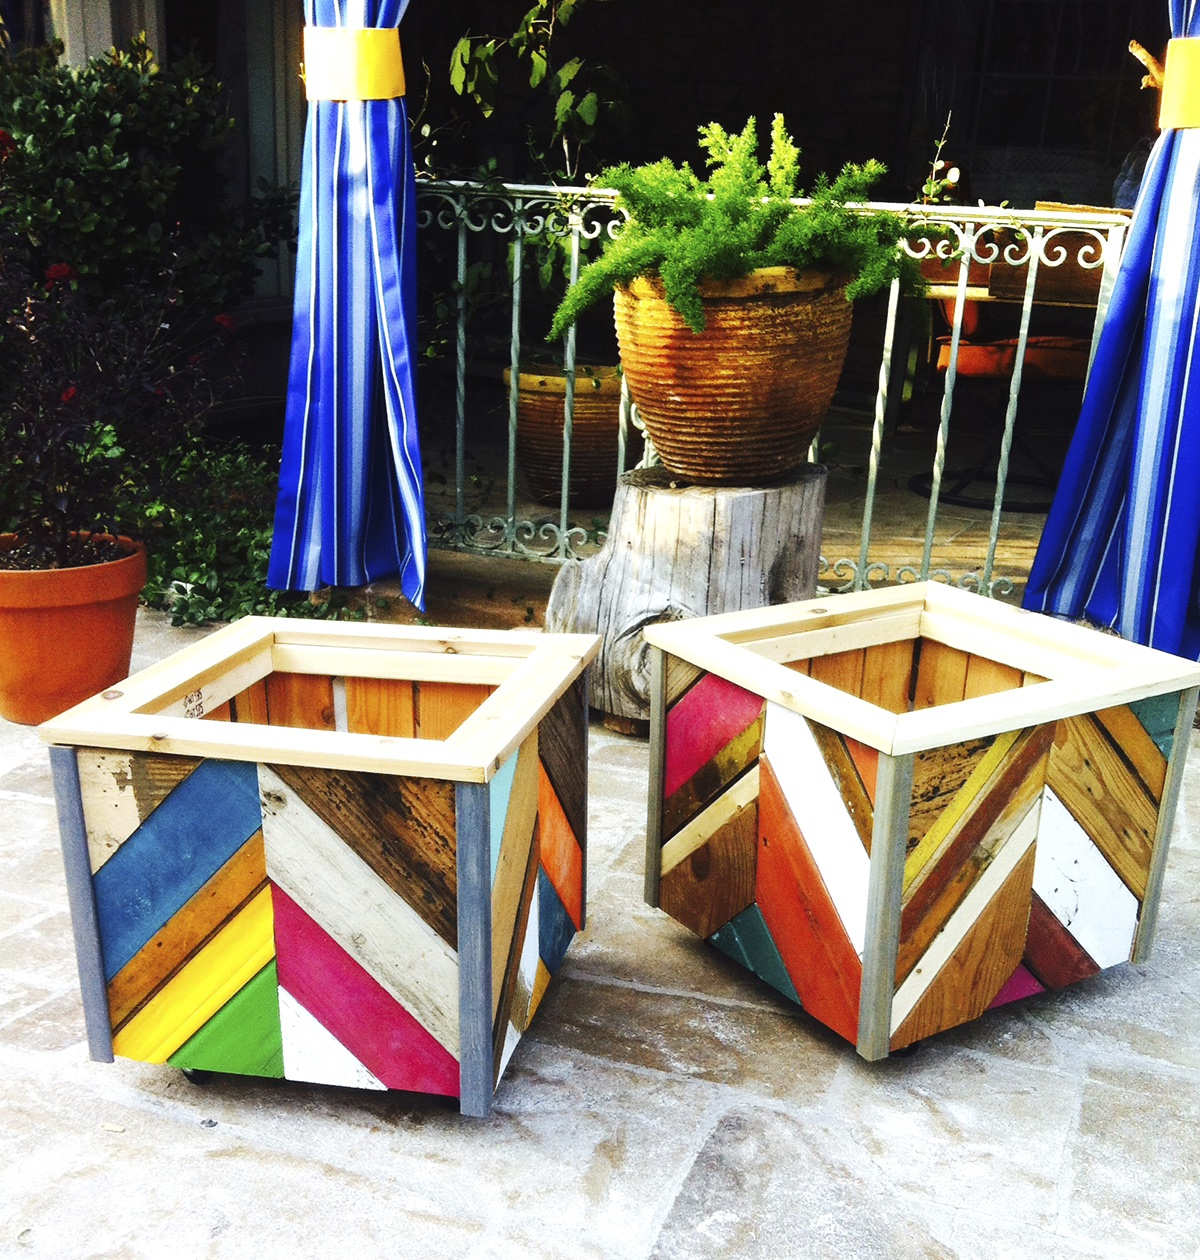 Colorful, reclaimed-wood planters